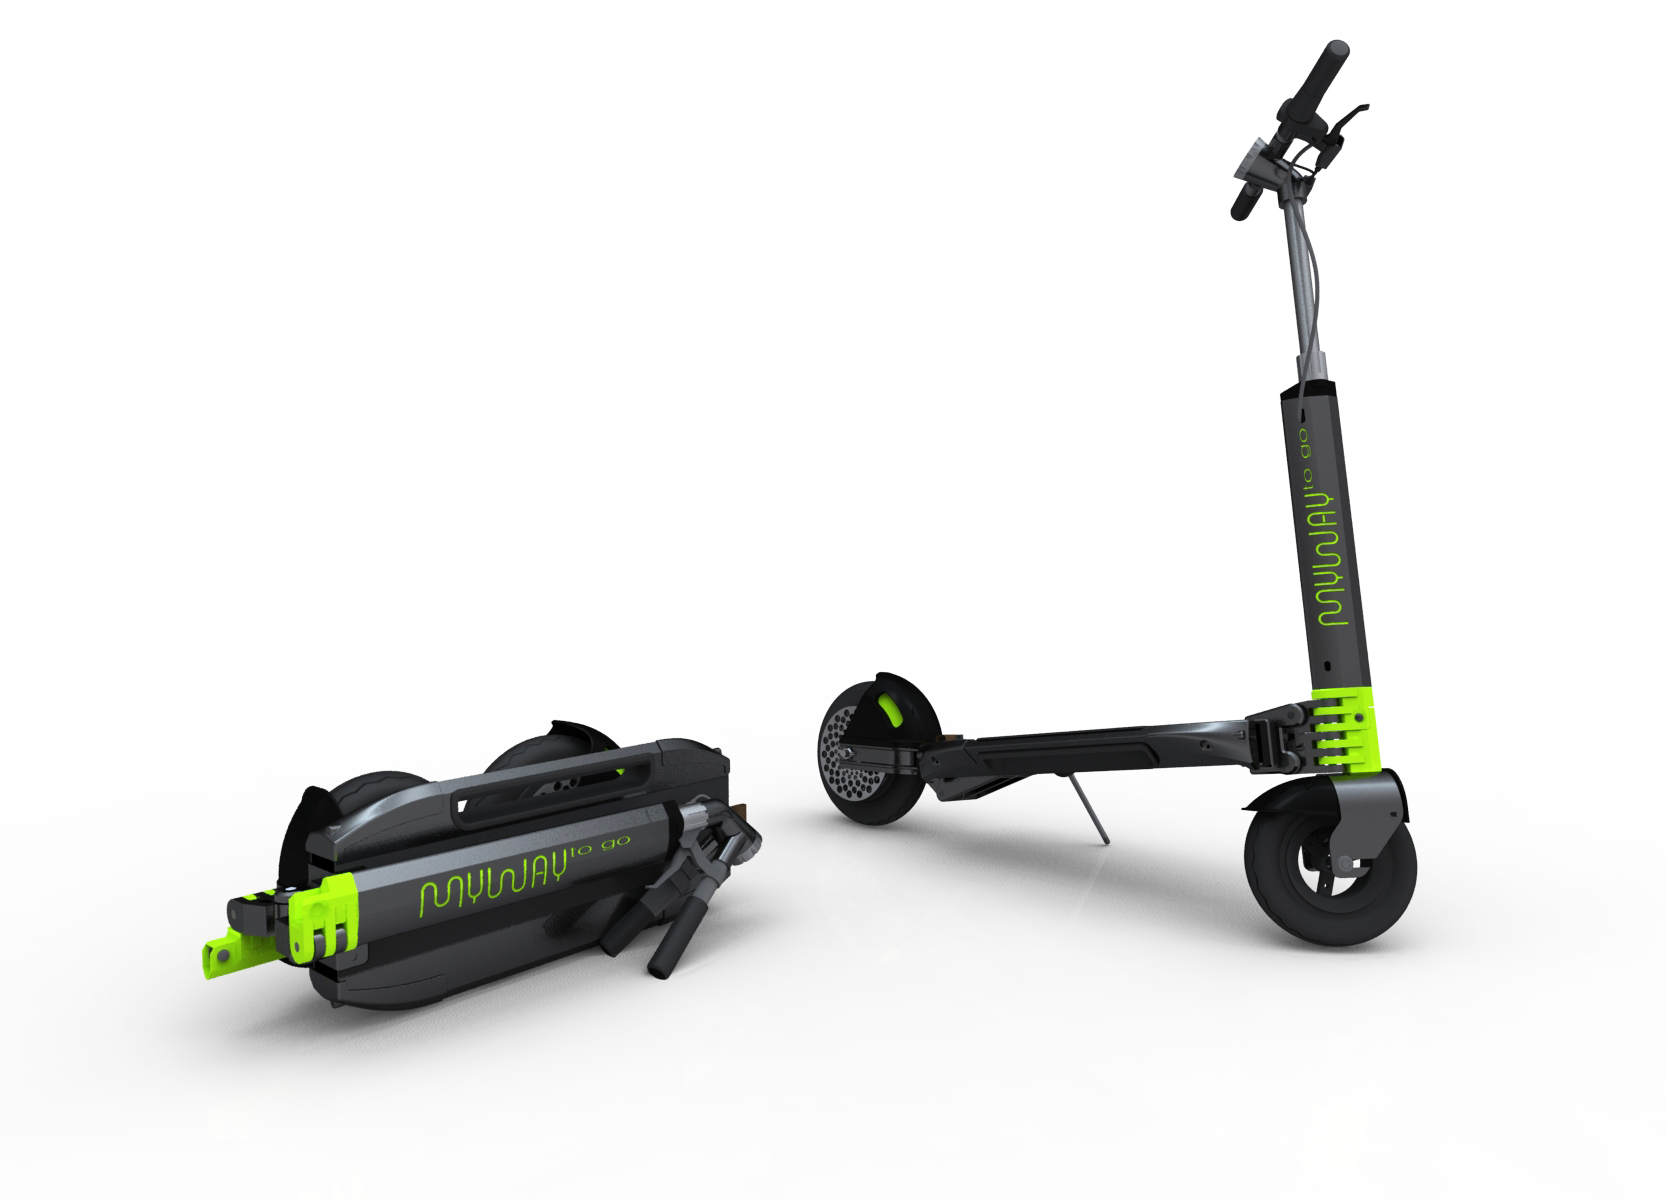 Myway Is A New Brand Of Portable E Scooters